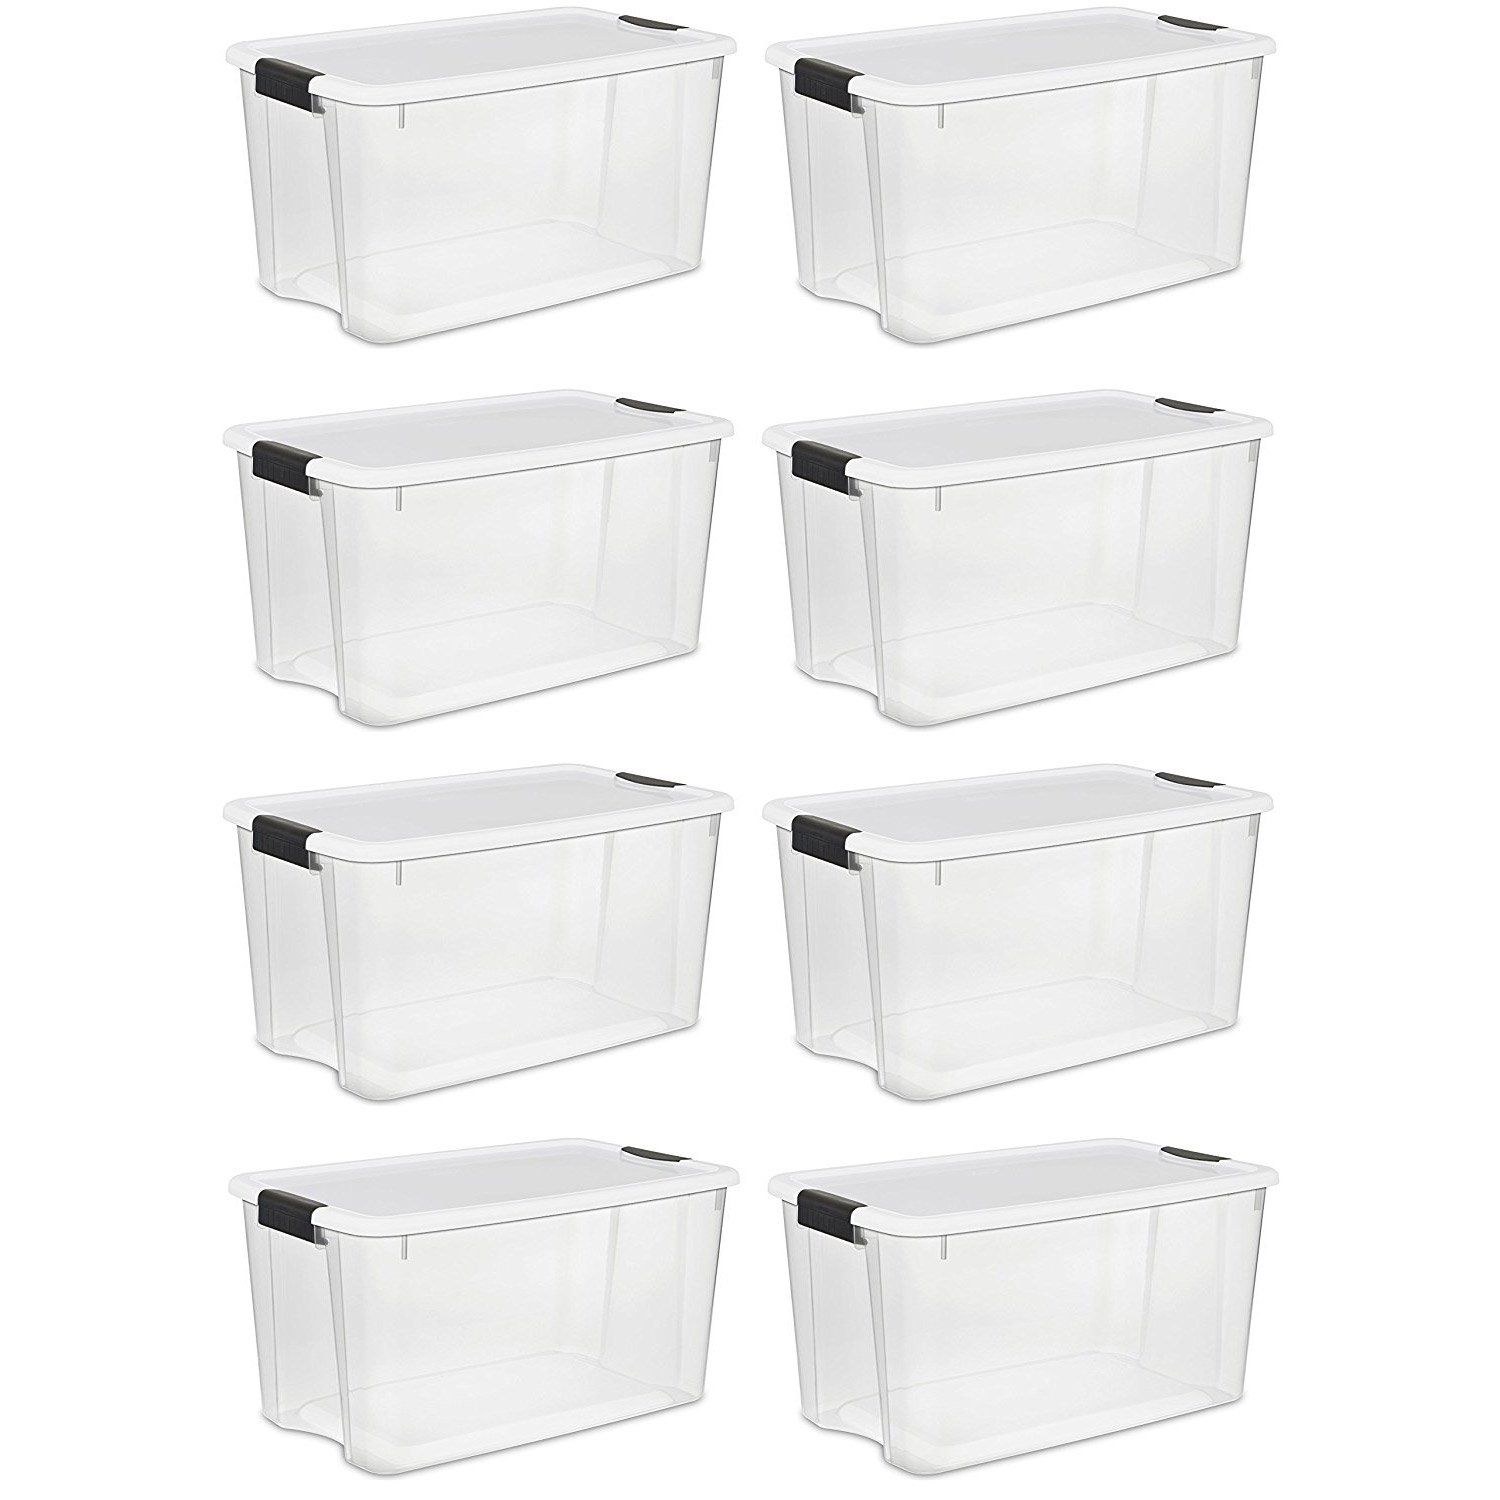 Sterilite 70 Quart/66 Liter Ultra Latch Box, Clear with a White Lid and Black Latches, (70 Quart, 8-Boxes)